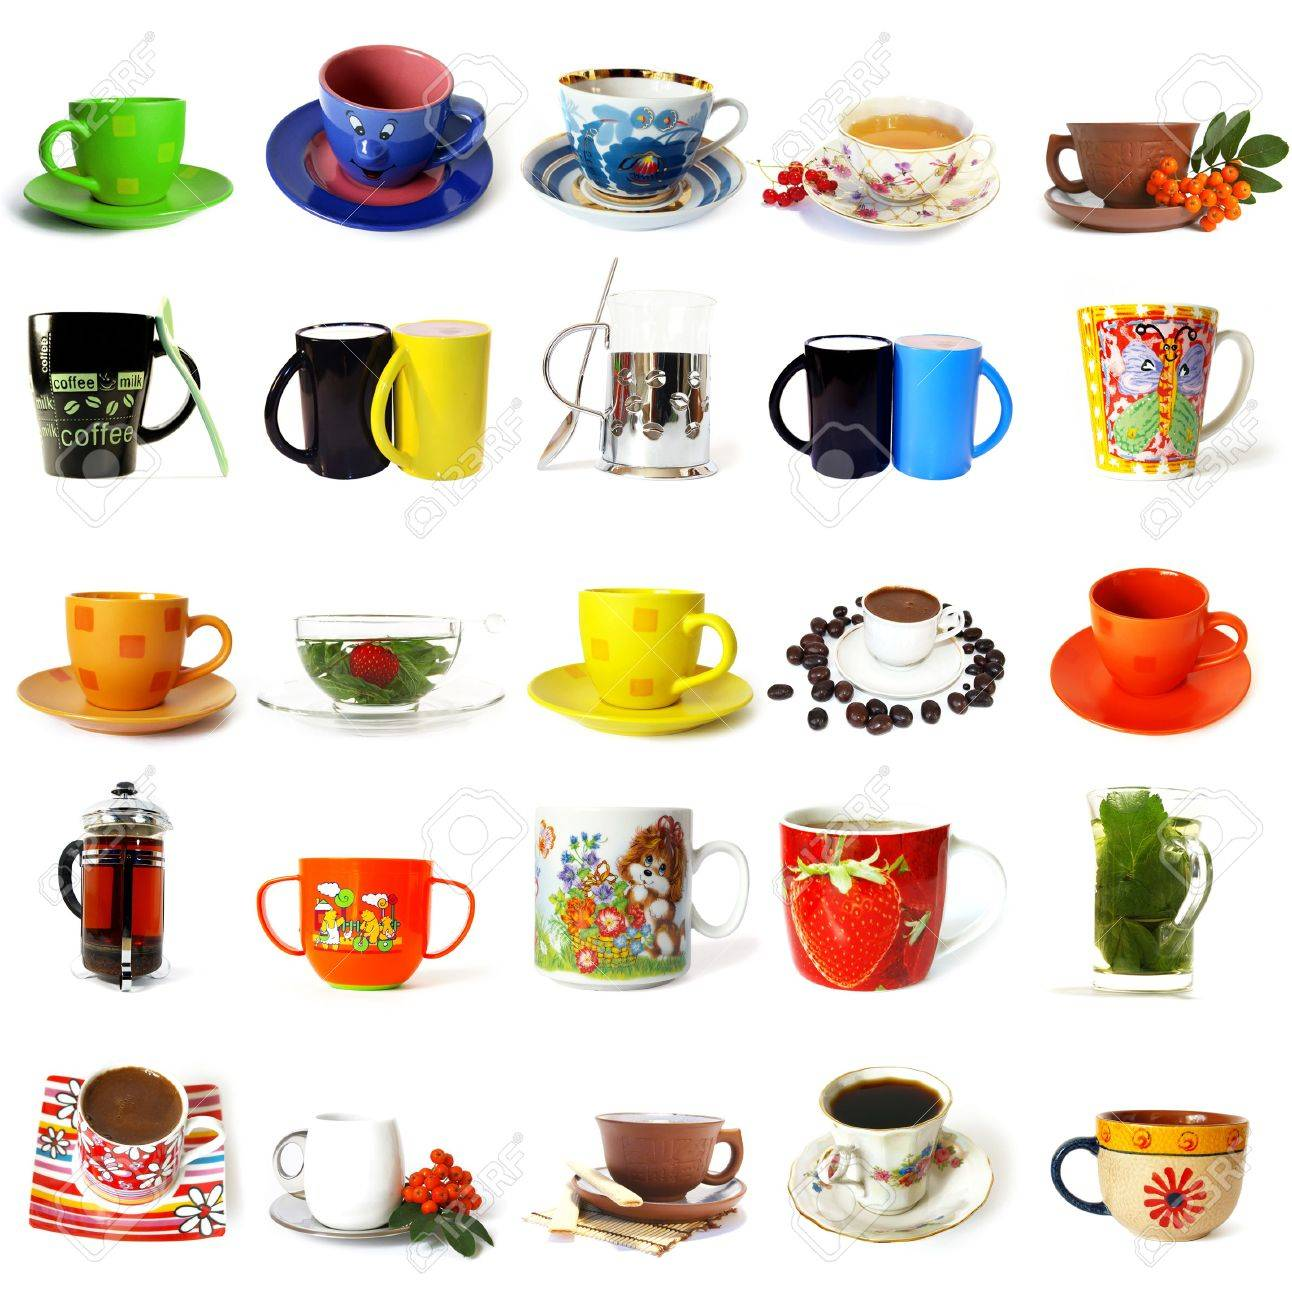 Big collection of  tea mugs and coffee cups isolated on a white background Stock Photo - 3508273